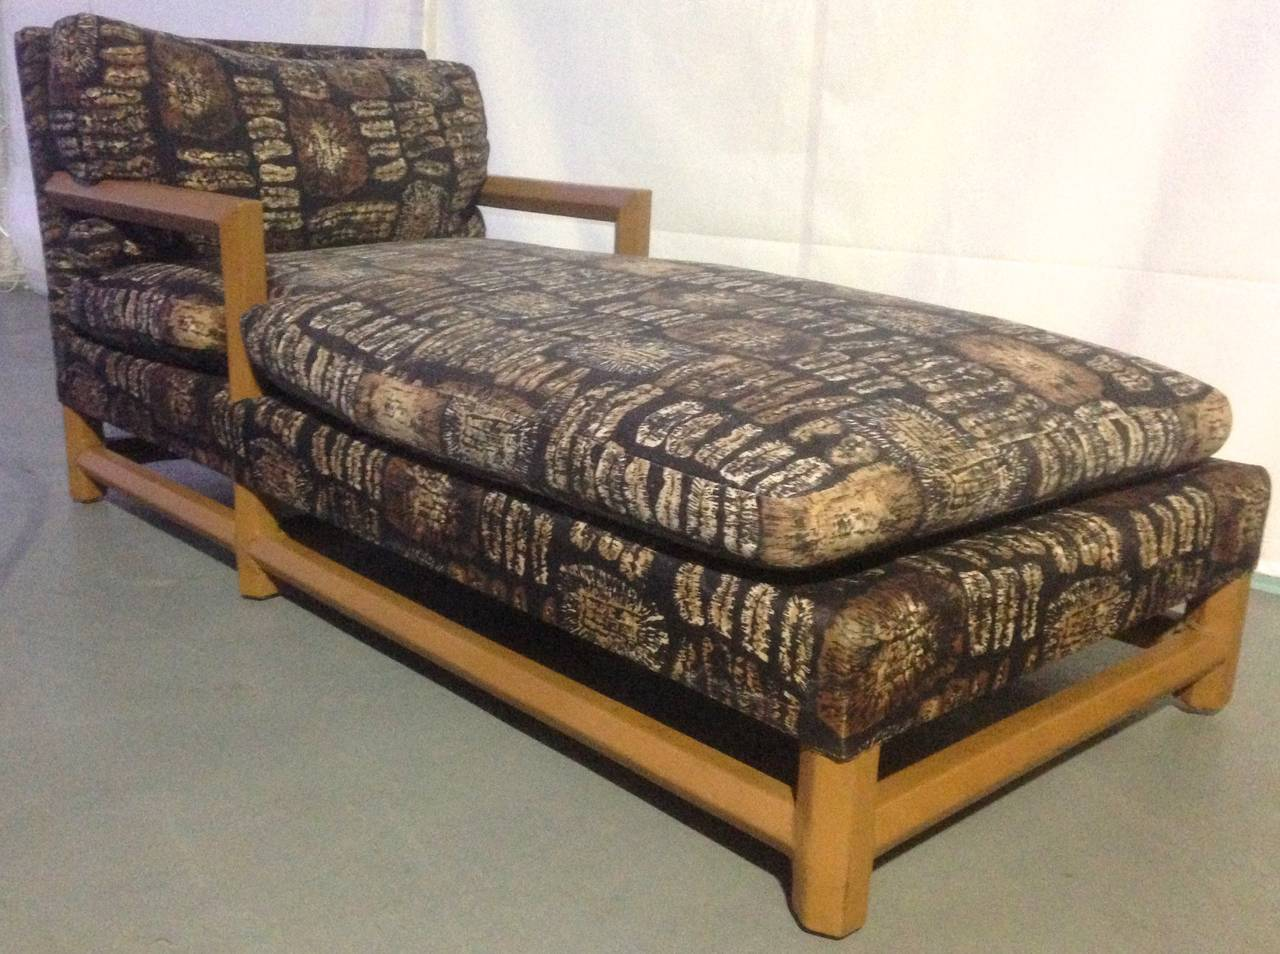 Chic leather-wrapped chaise longue with original batik fabric. Over-stuffed cotton cushions on camel leather-wrapped octagonal stretcher base. Acquired from the same estate that our other, verified, Springer pieces came from.